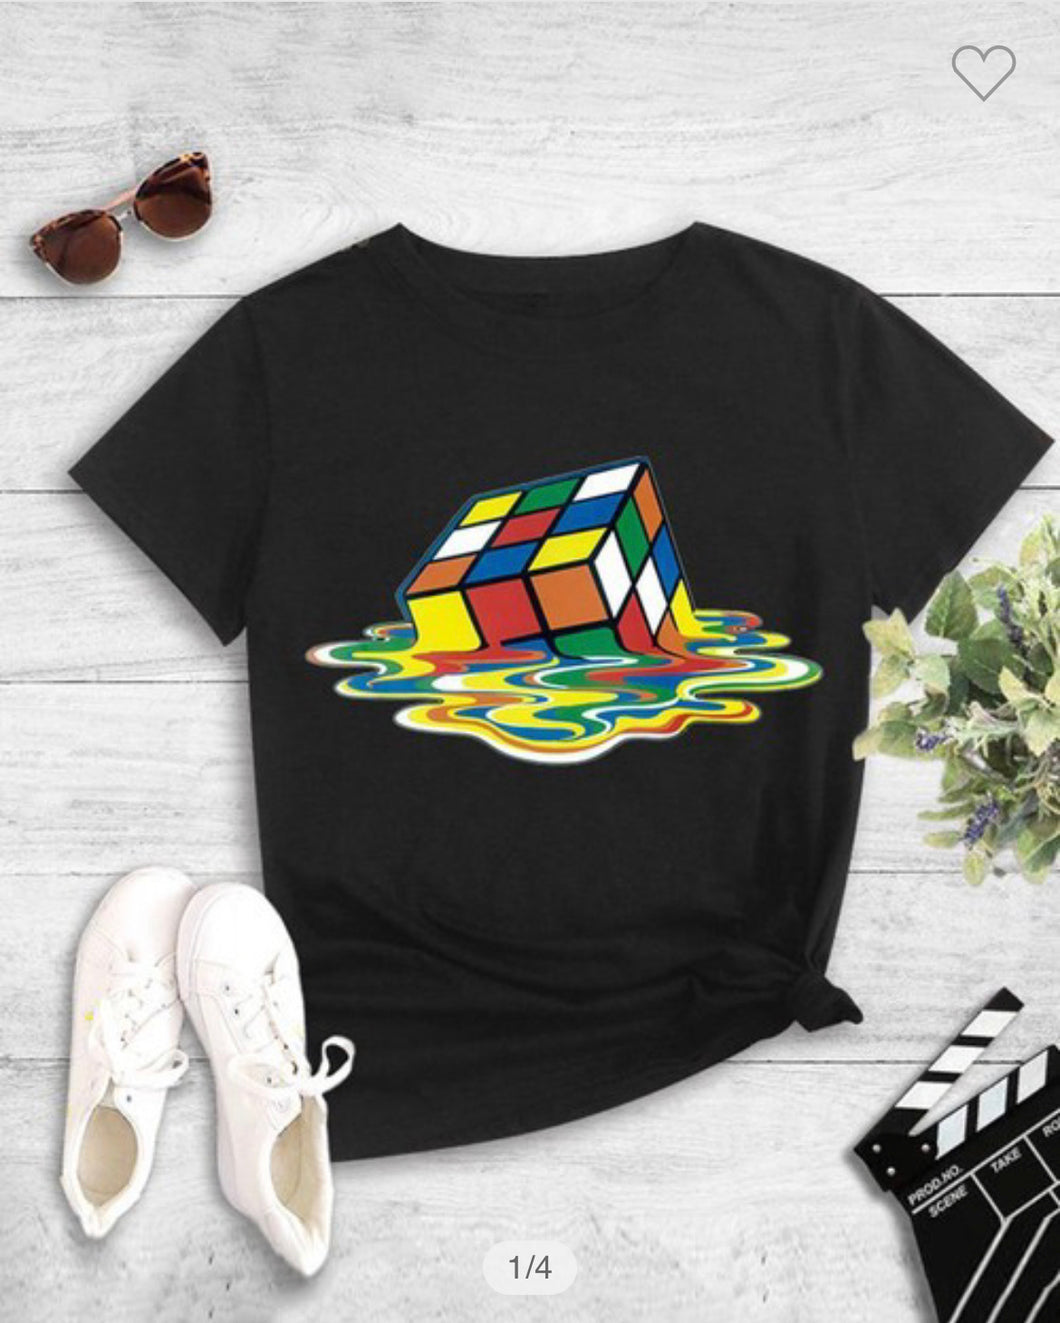 Rubix's Graphic TEE | T-SHIRT